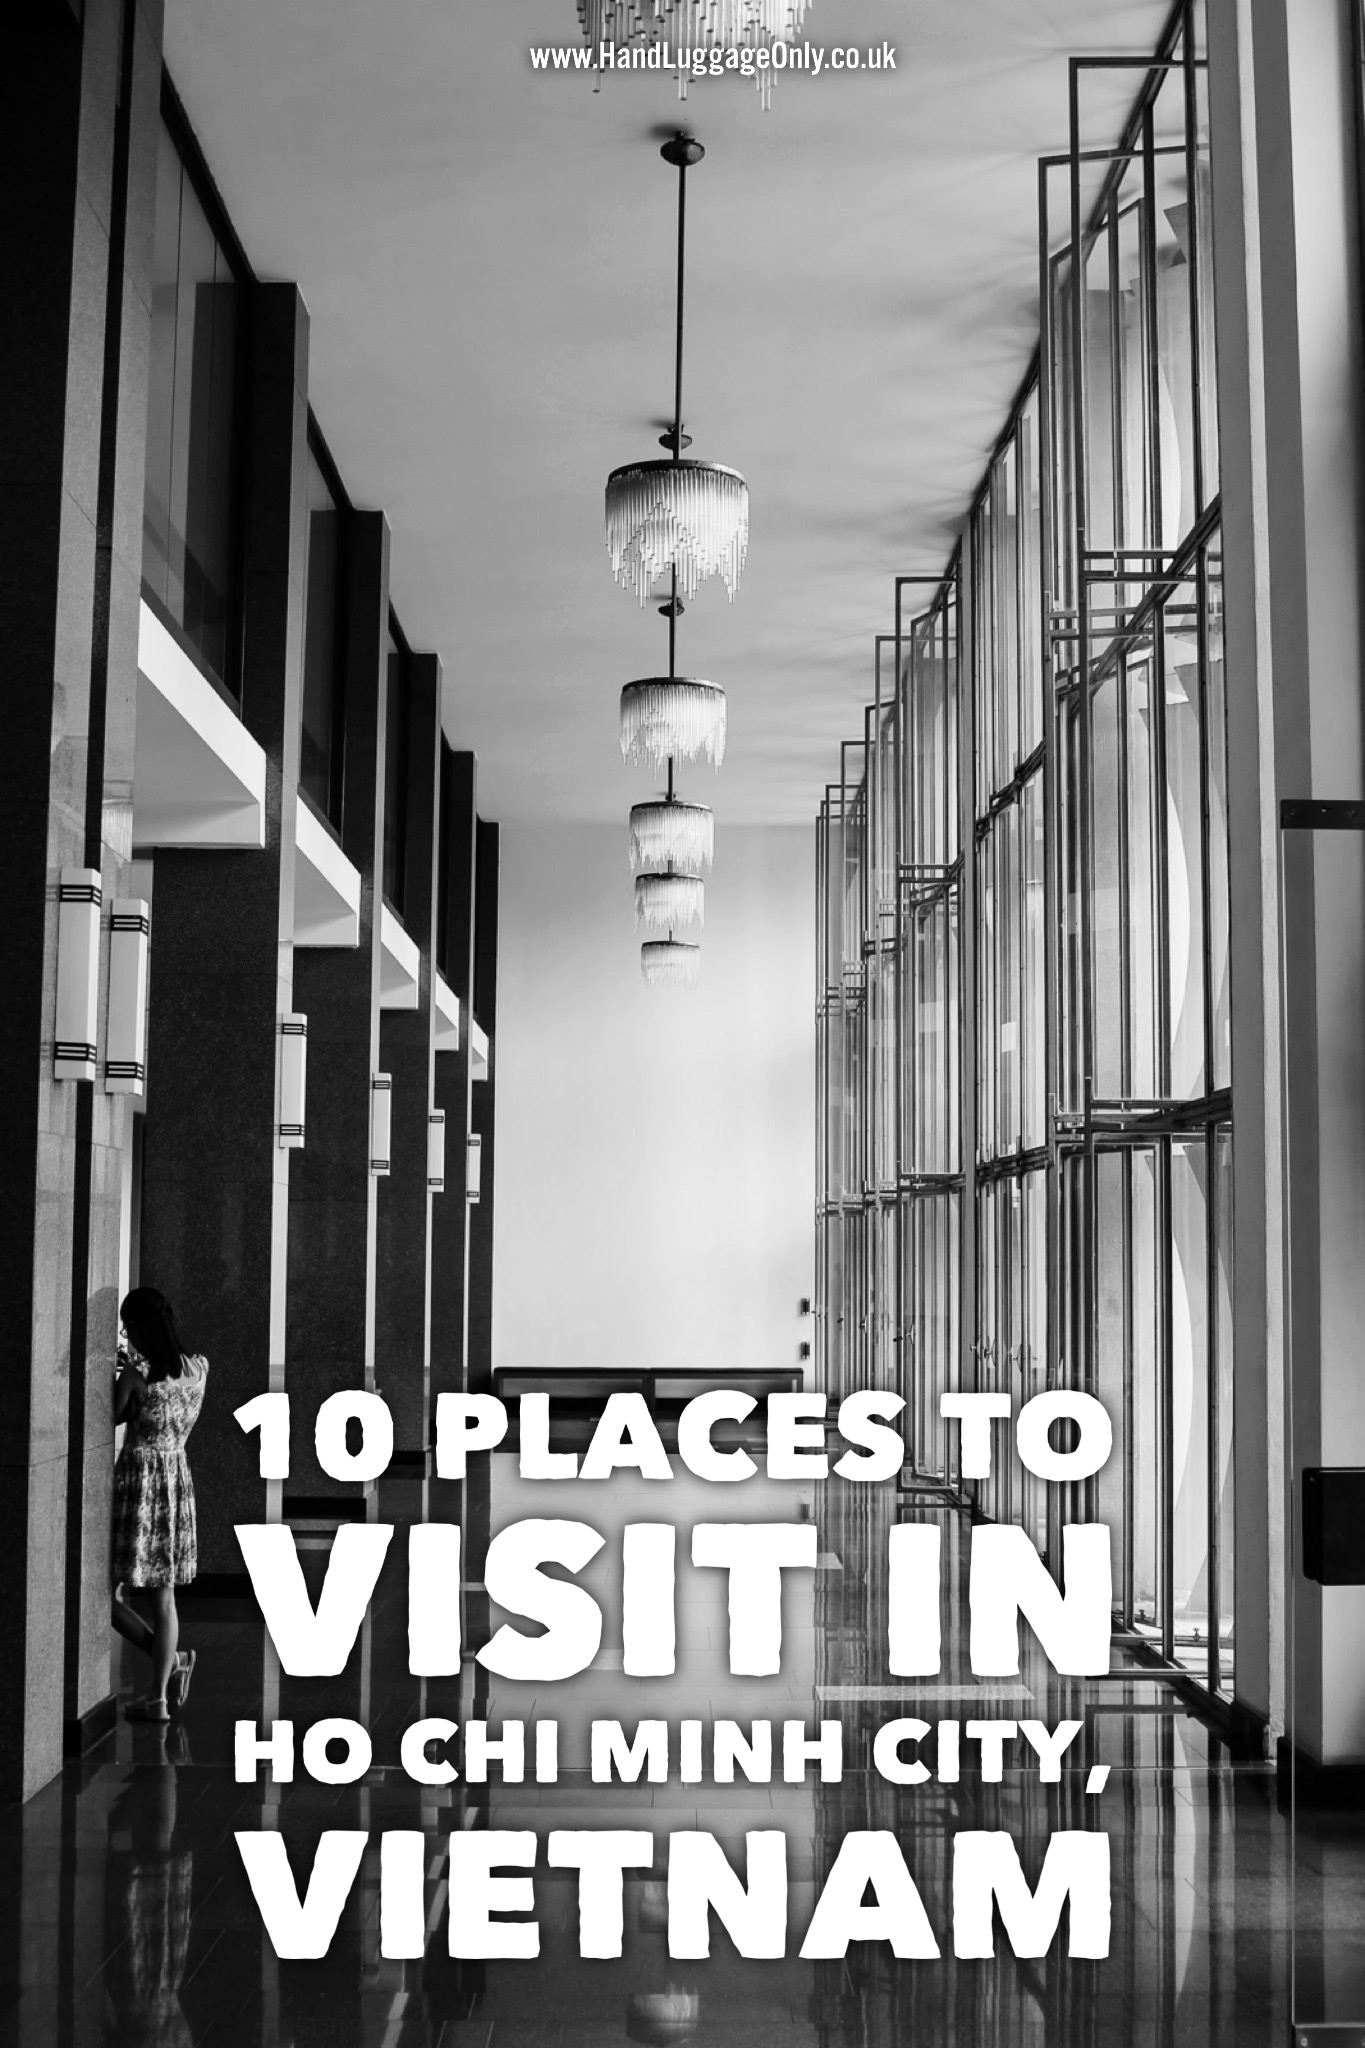 10 Places to Visit in Ho Chi Minh City, Vietnam (1)